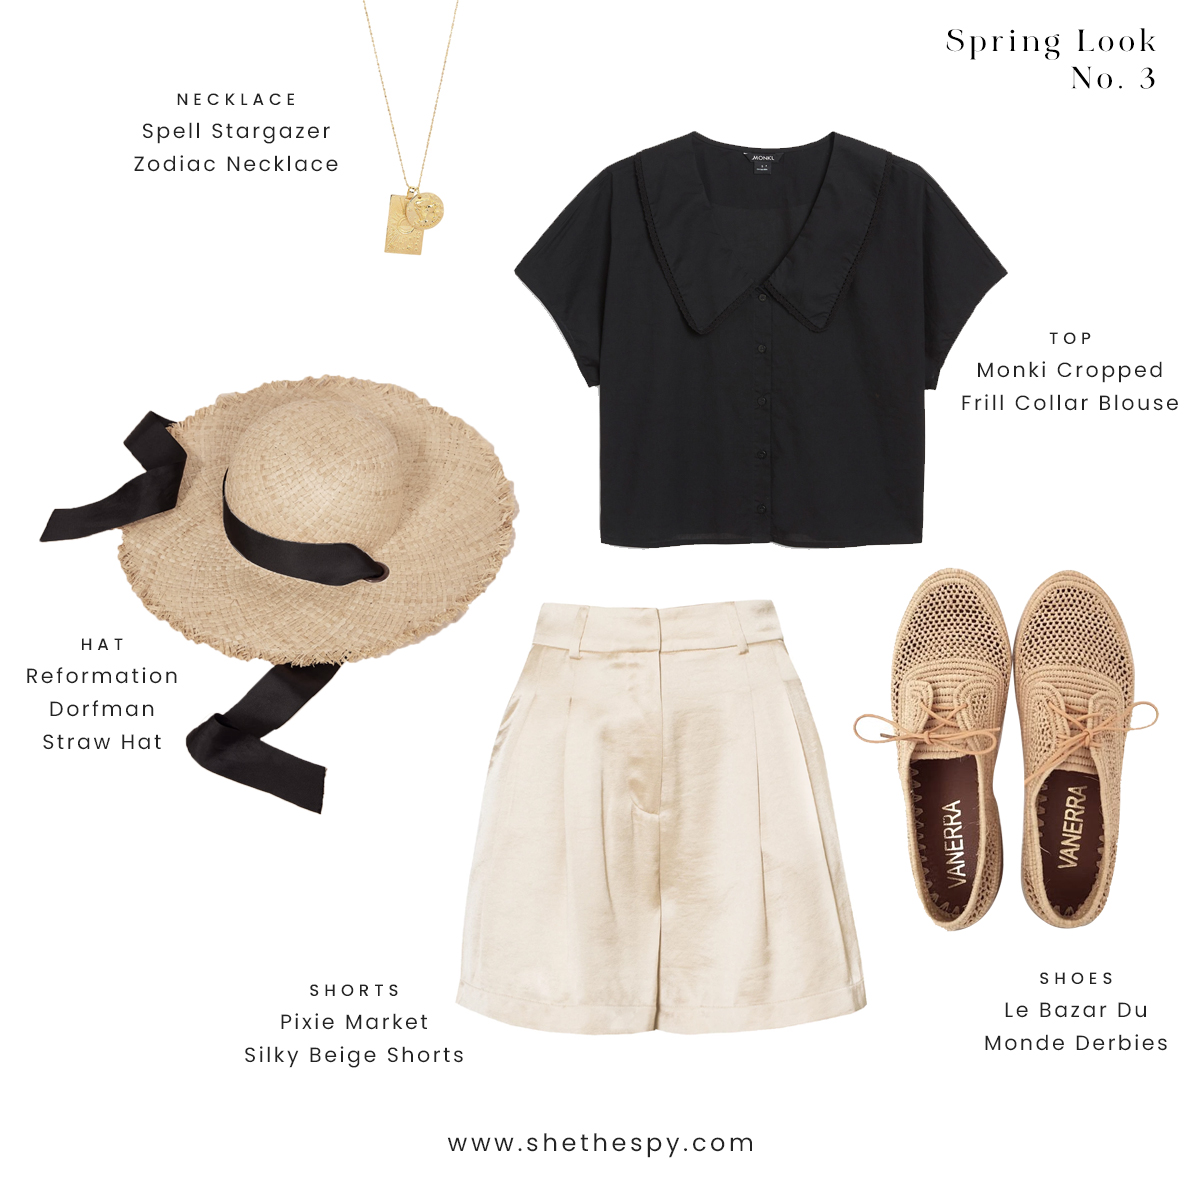 Spring look no. 3 - Pack a picnic basket. Days bicycle riding to nearby castles. Woven accessories and ribbons in hair. Monochrome chic.SHOP //NecklaceTopHatShortsShoes